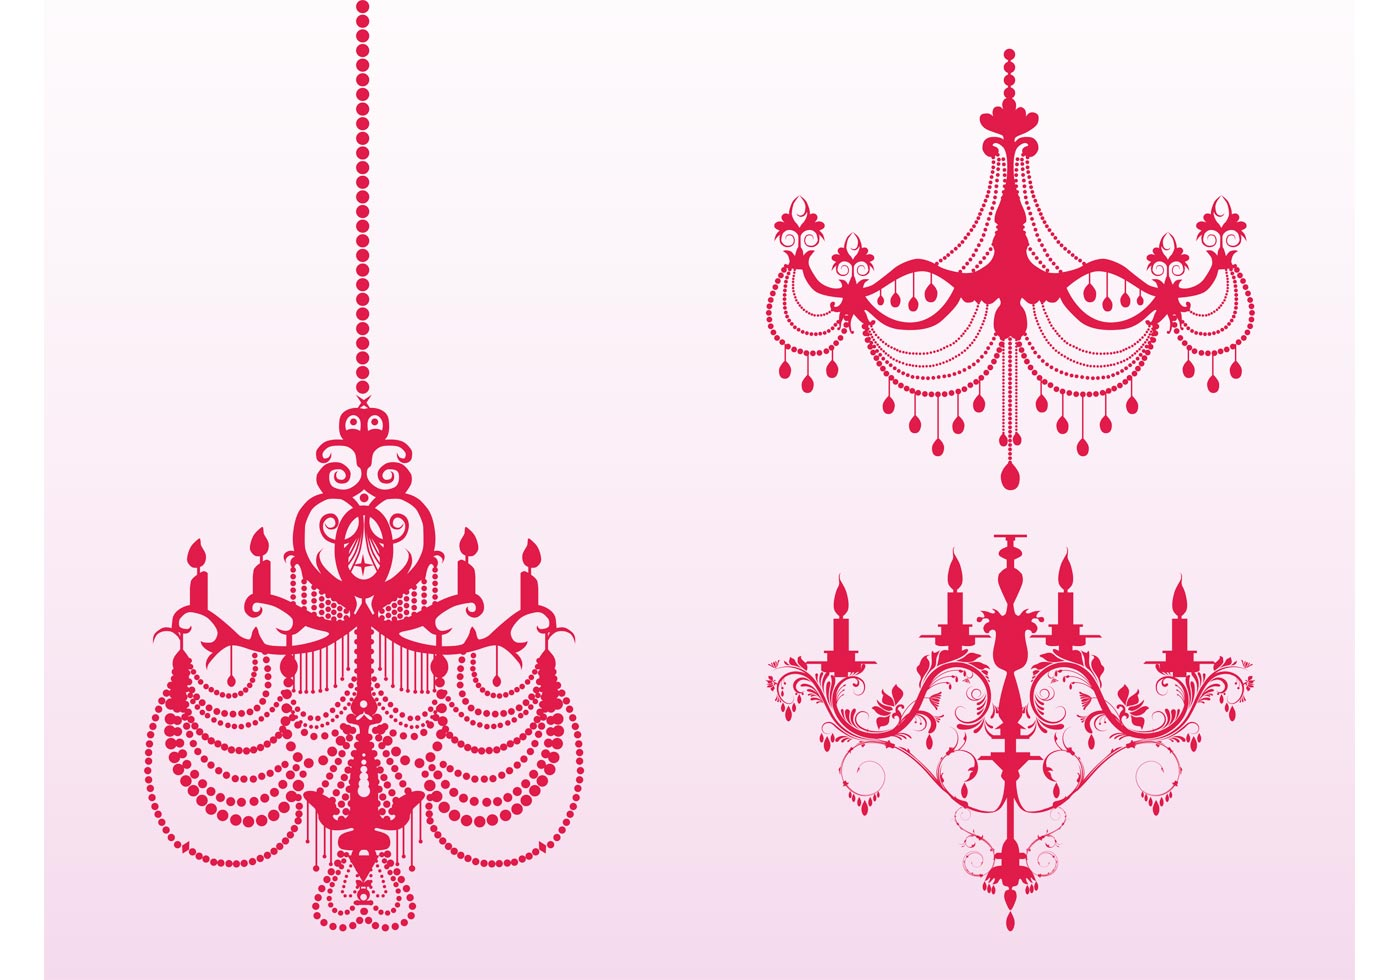 Antique Chandeliers Silhouettes